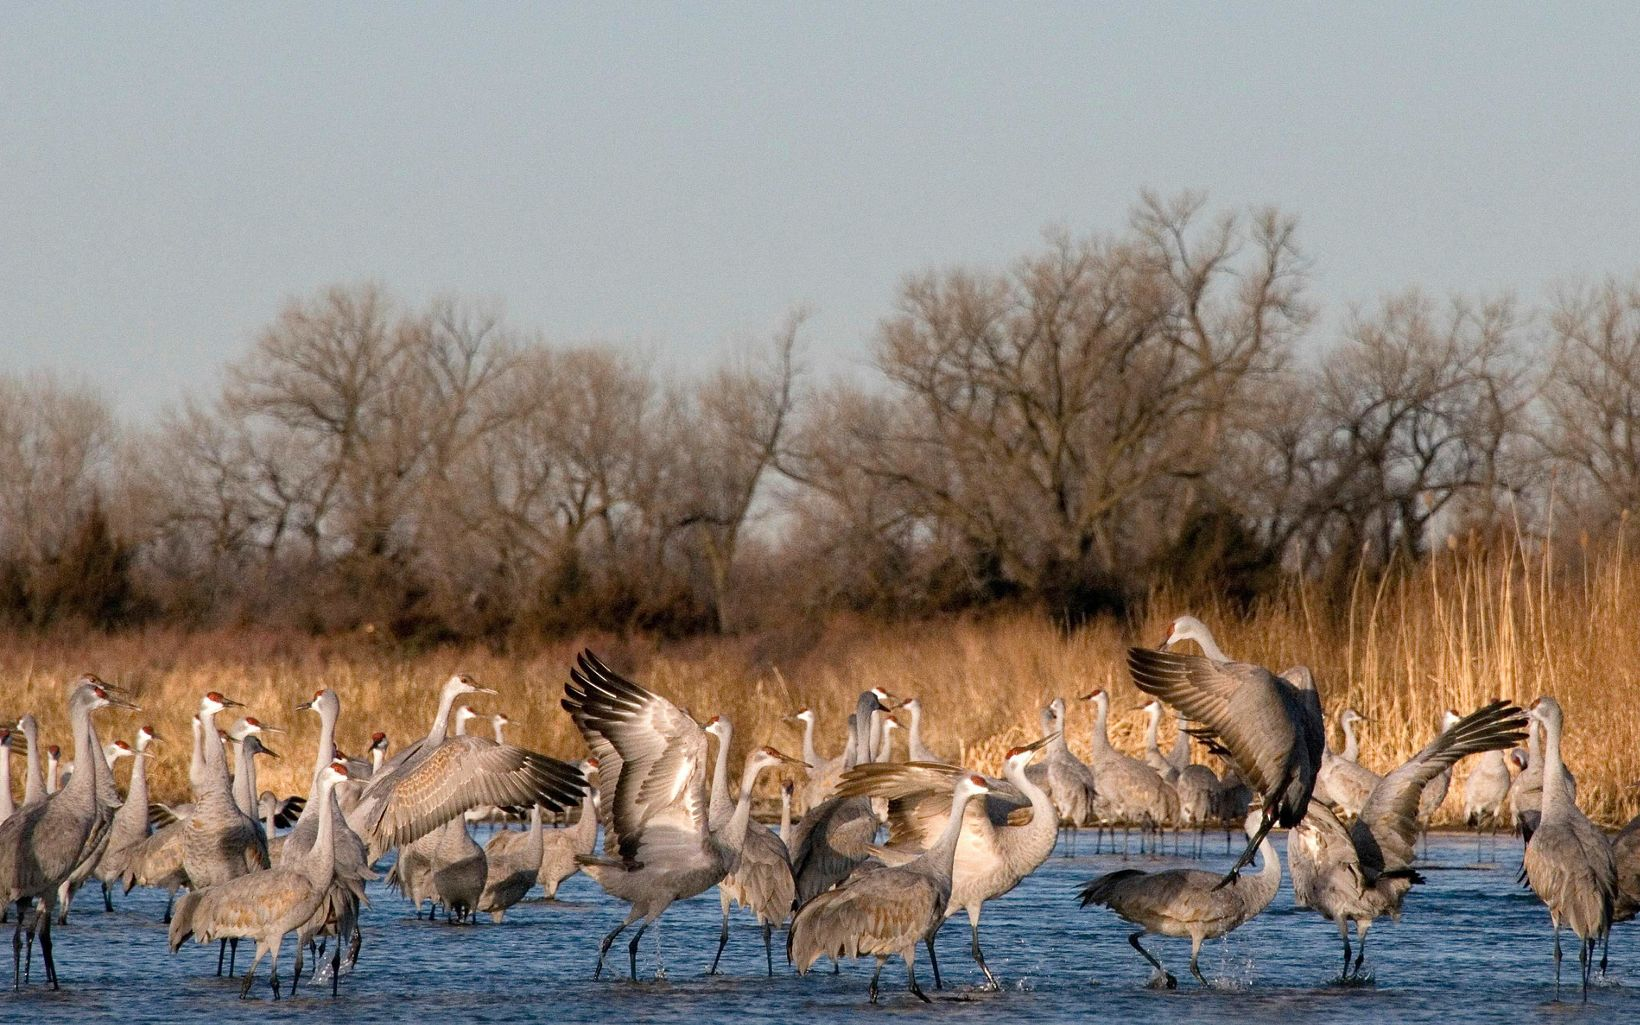 Sandhill cranes refuel at the Platte River in south central Nebraska during their annual migration.